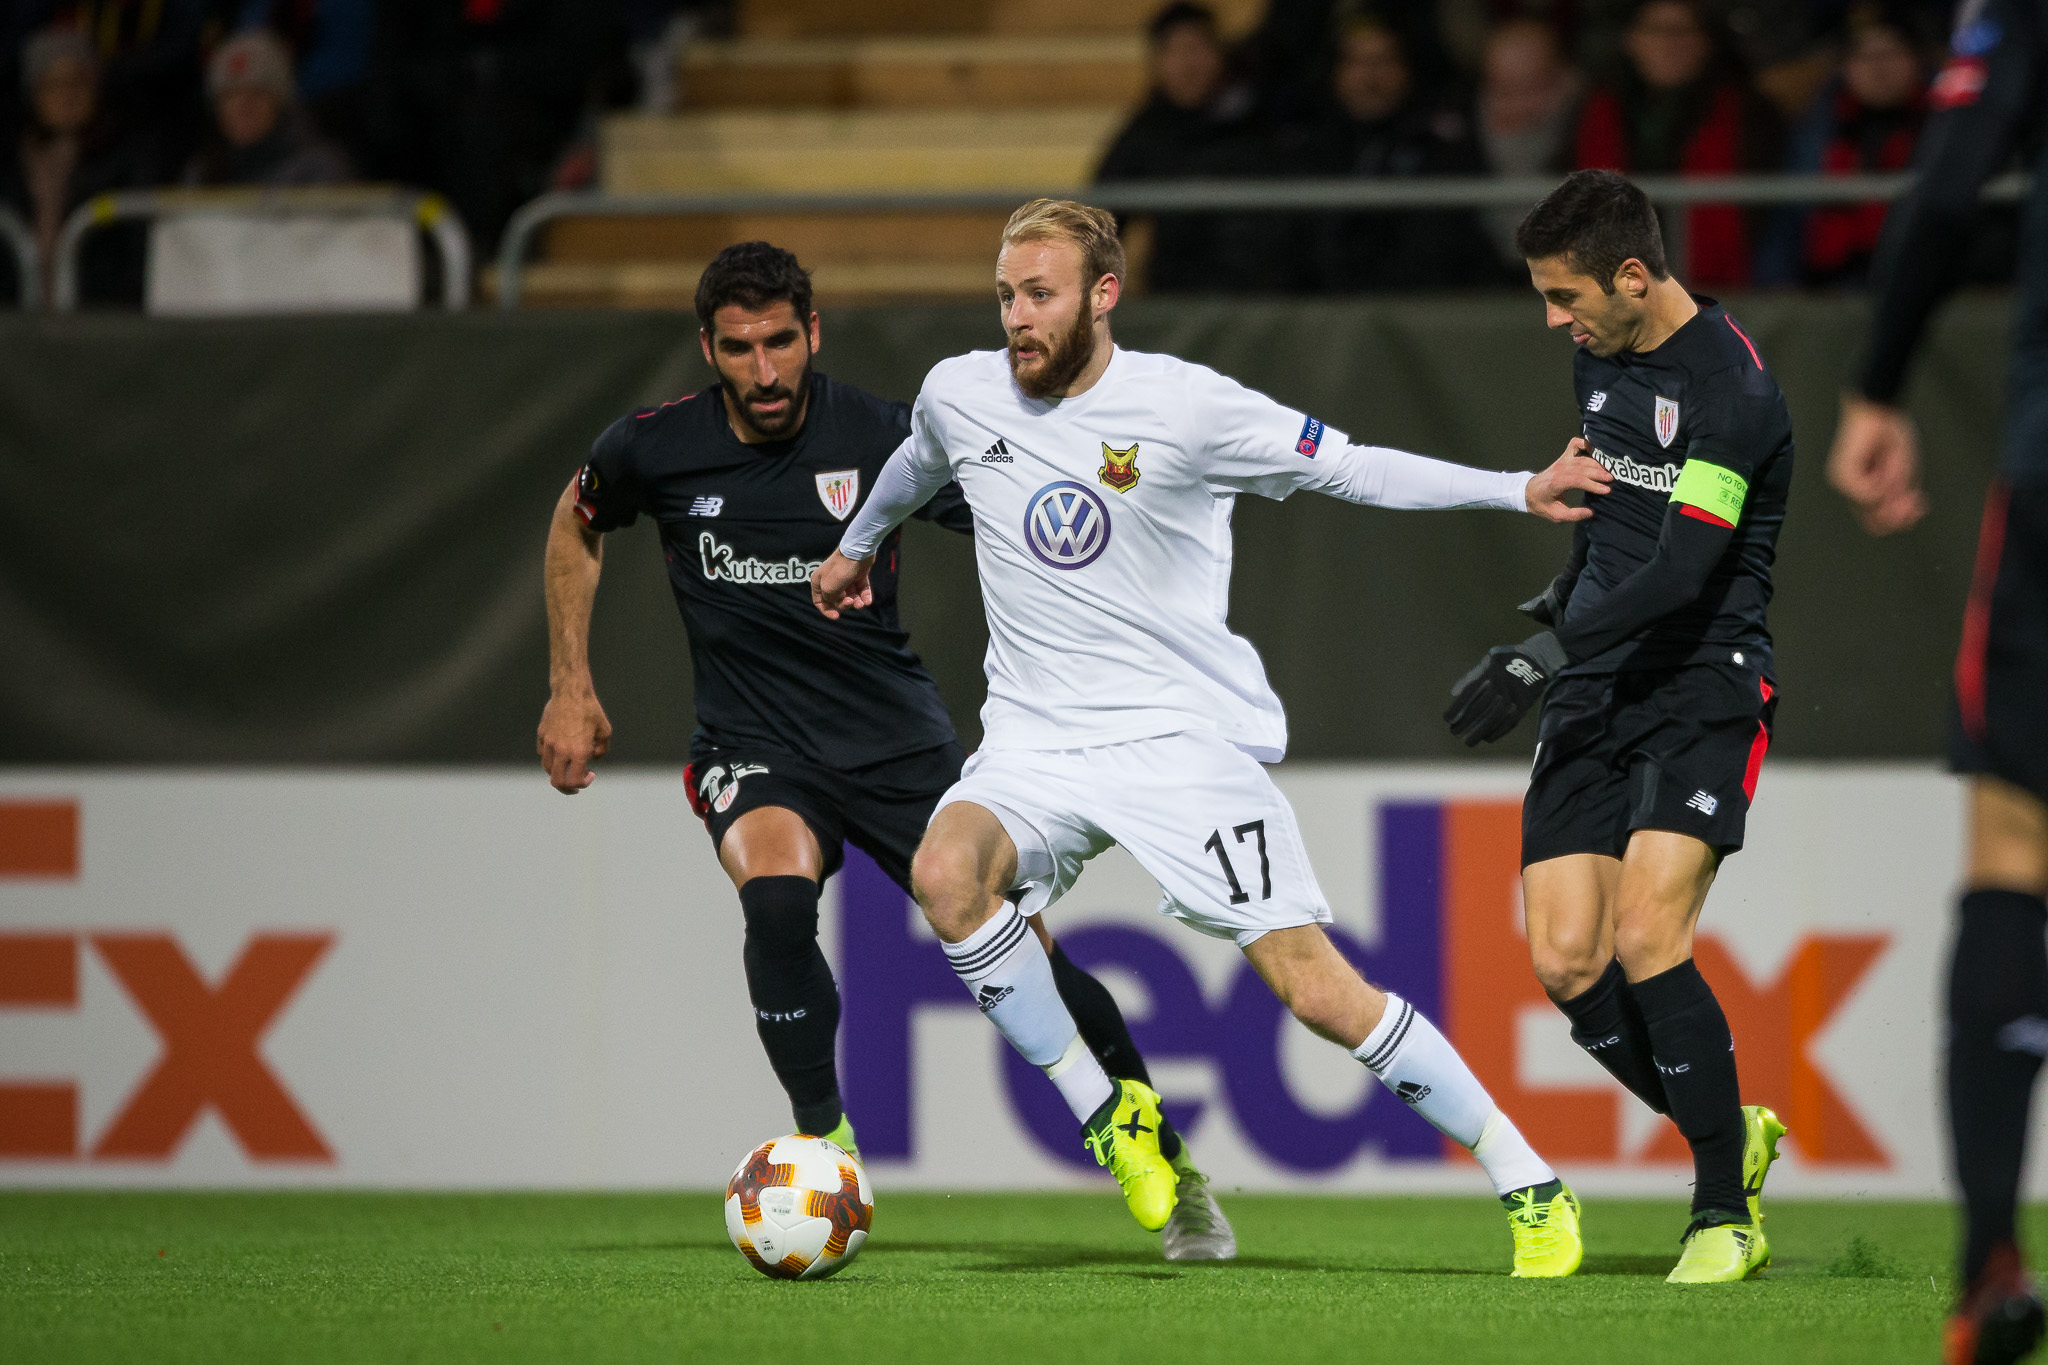 Ostersunds' Curtis Edwards playing against Athletic Bilbao (Johan Axelsson/Ostersunds)